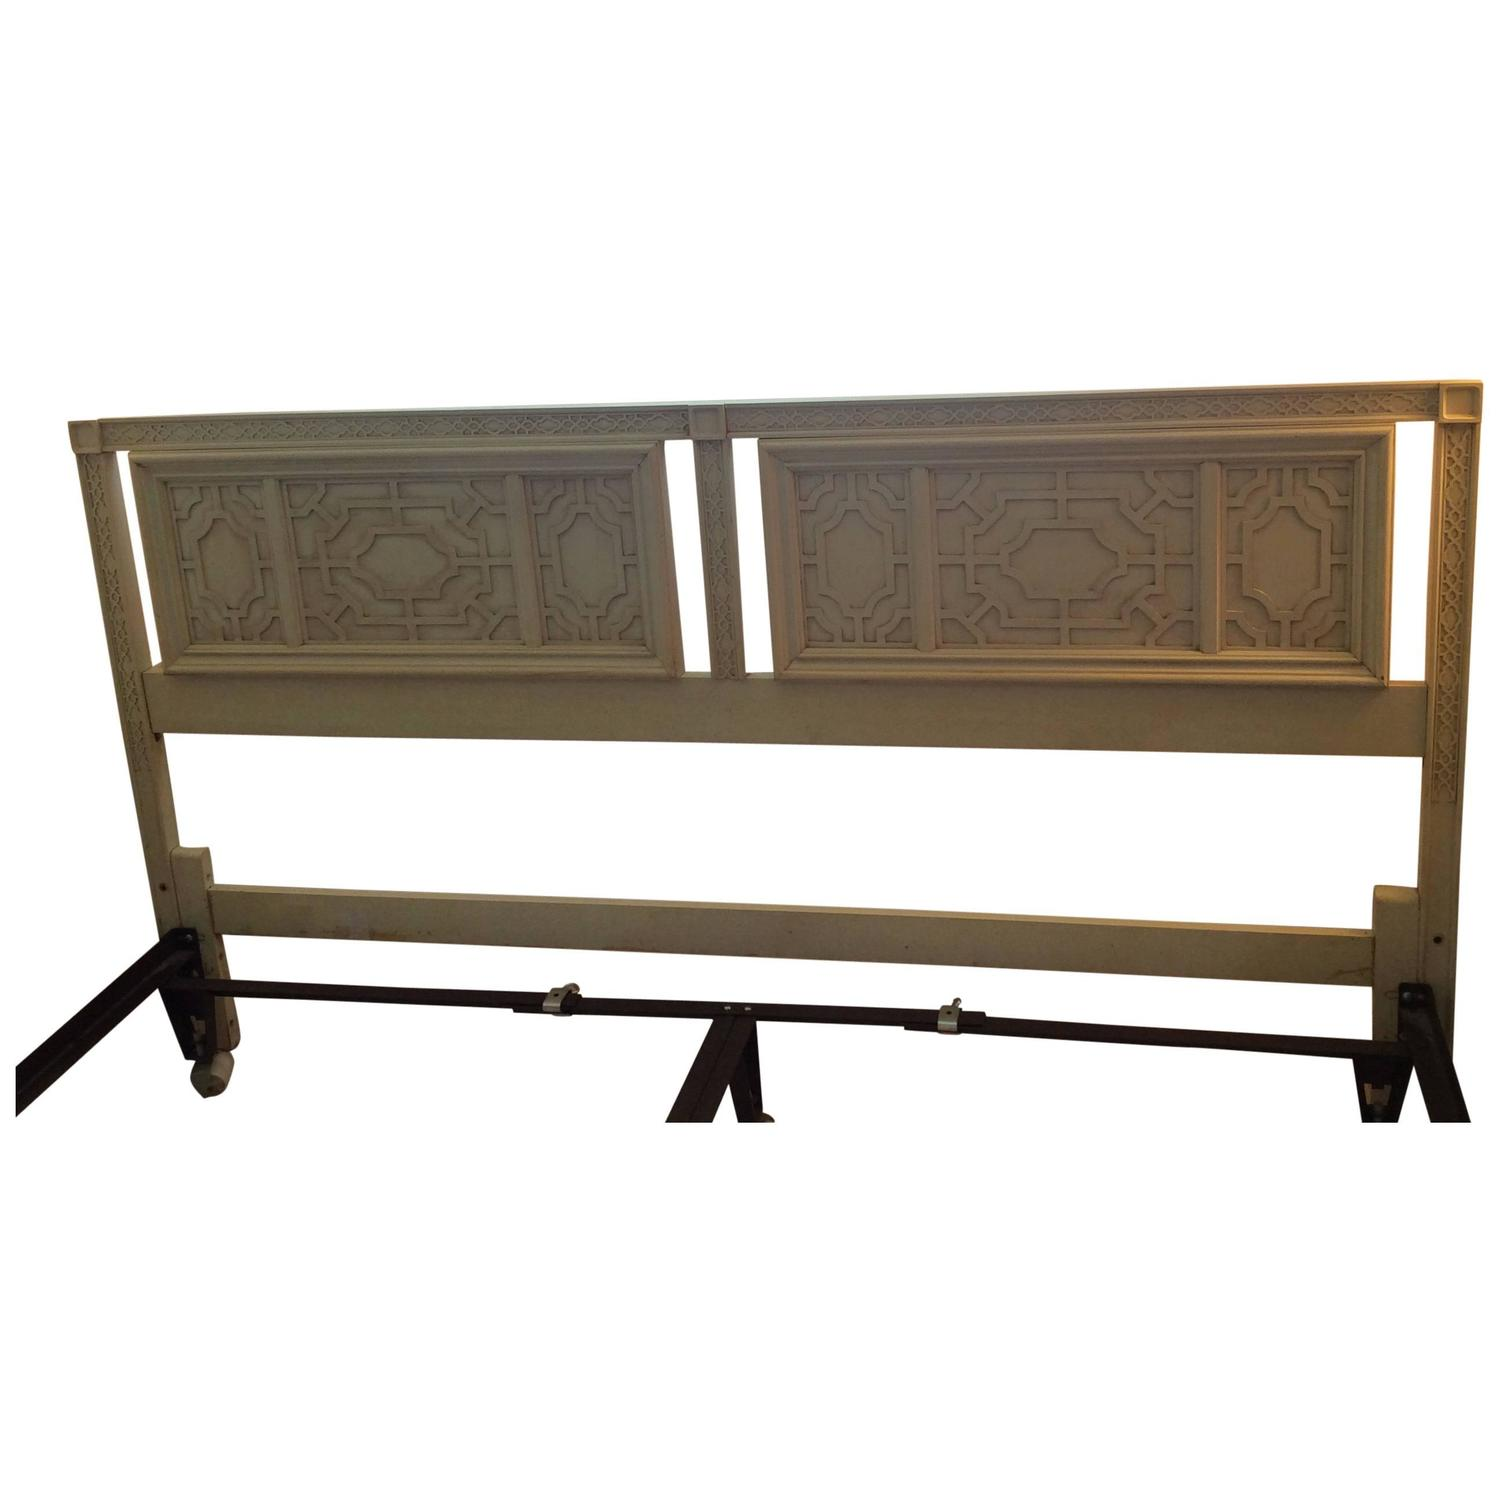 Thomasville Headboard Vintage King-Size Fretwork Chinese Chippendale Bed  For Sale at 1stdibs - Thomasville Headboard Vintage King-Size Fretwork Chinese Chippendale